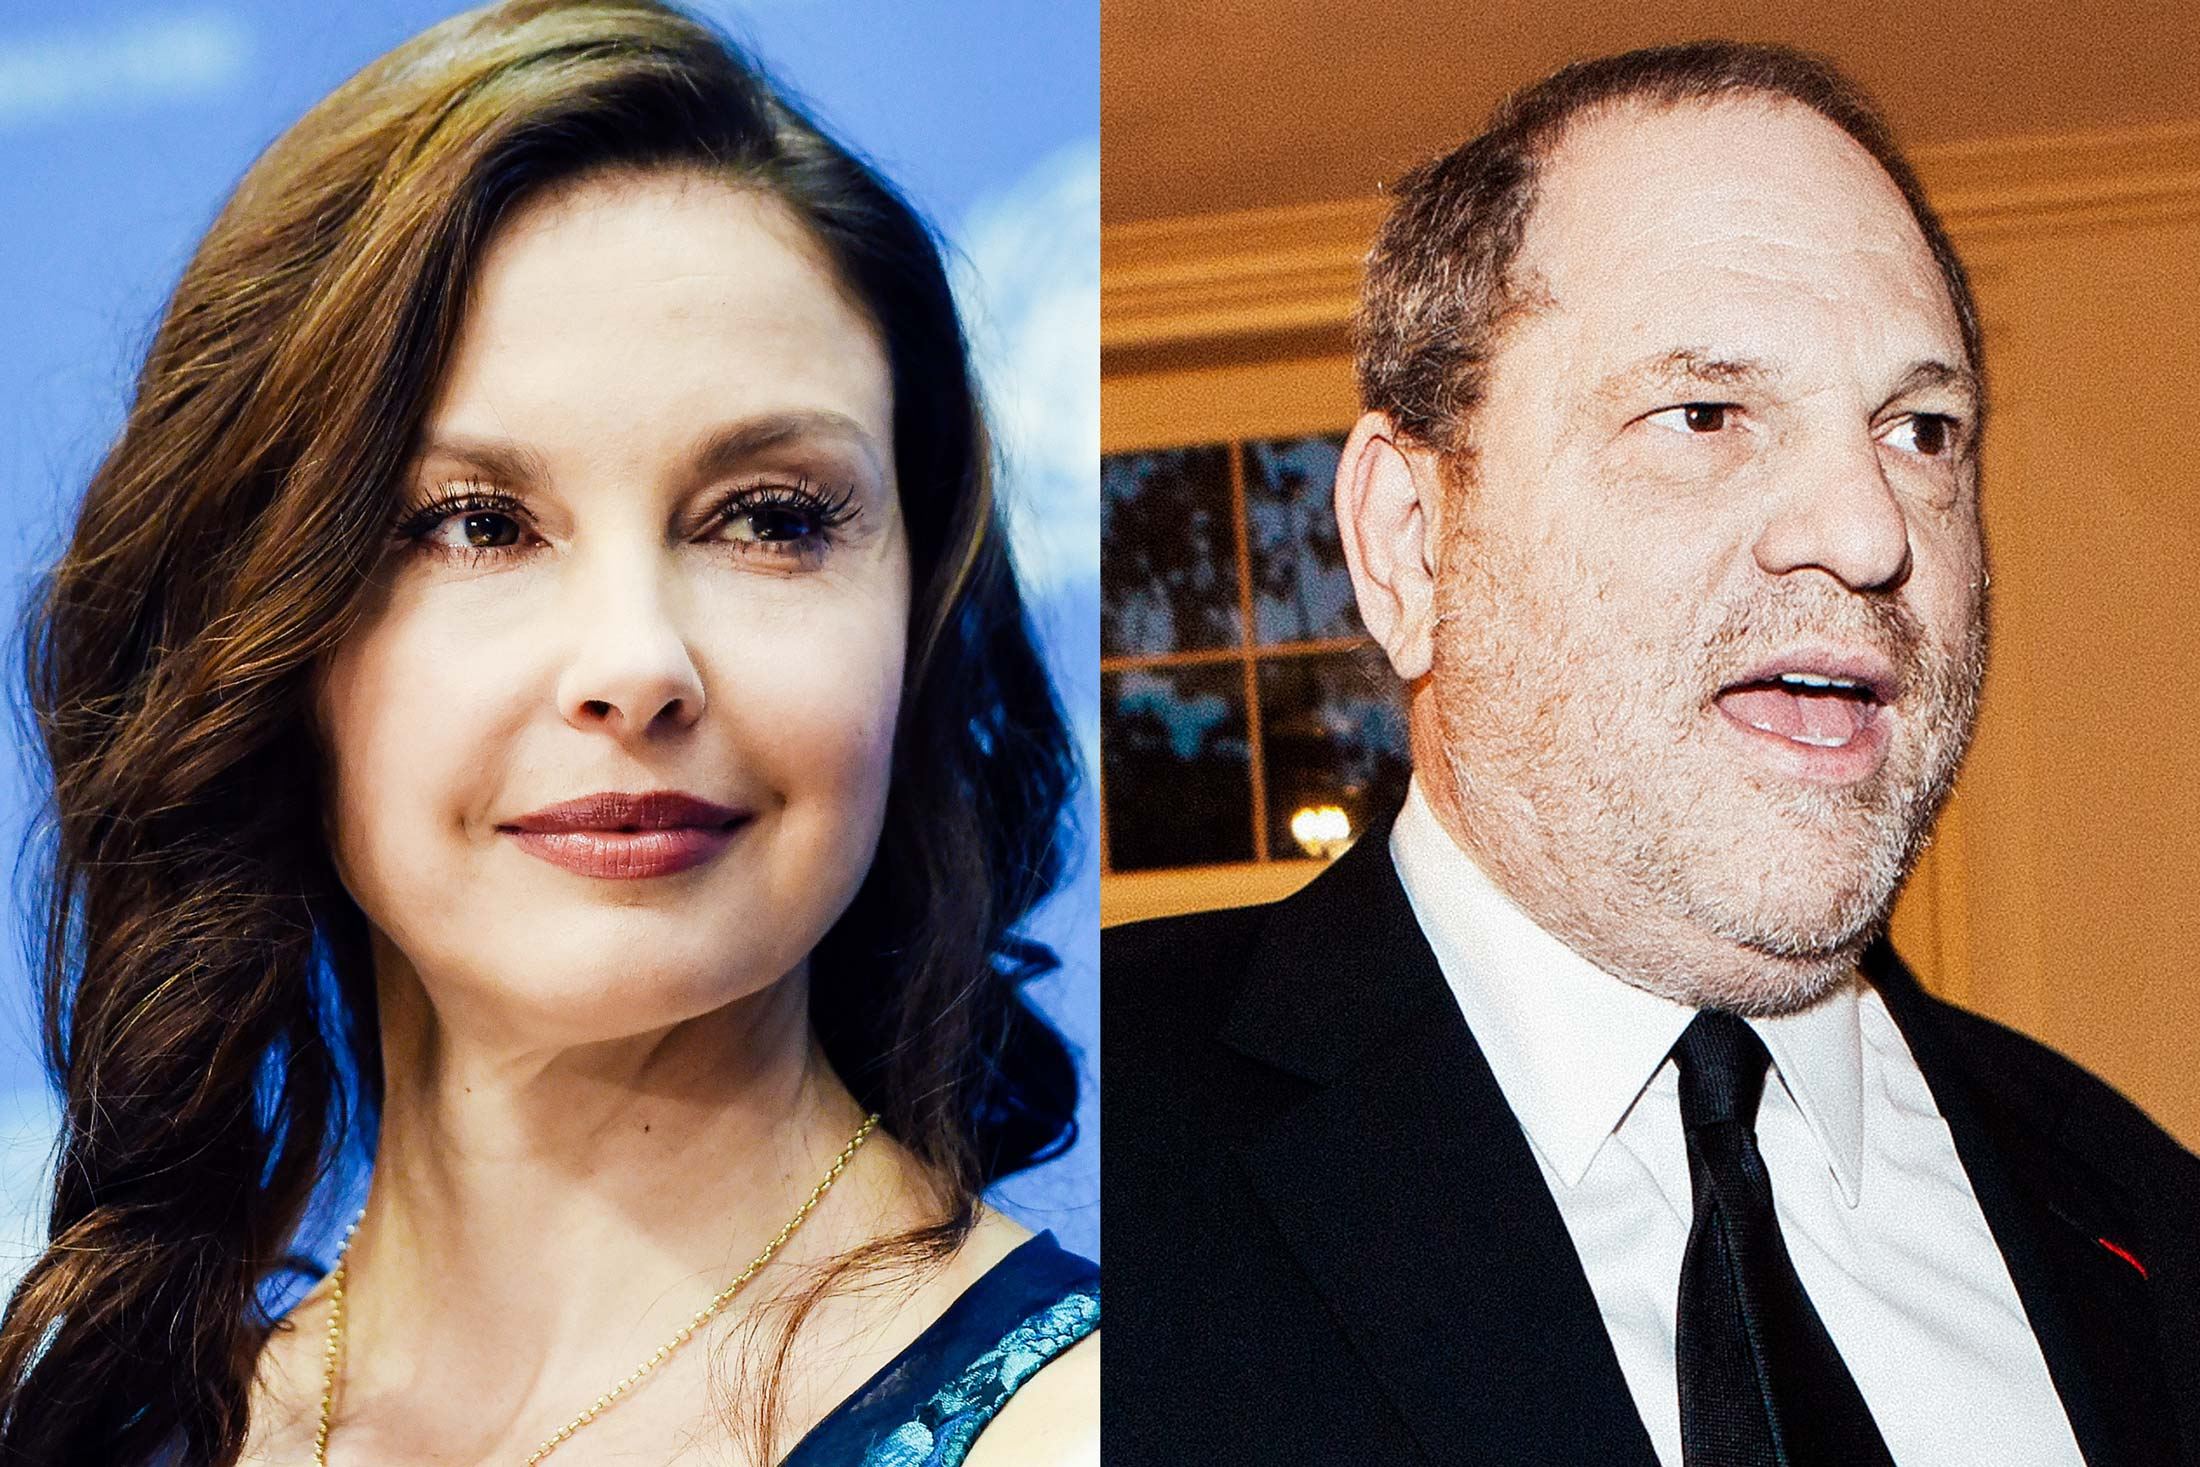 A composite image with Ashley Judd at left and Harvey Weinstein at right.